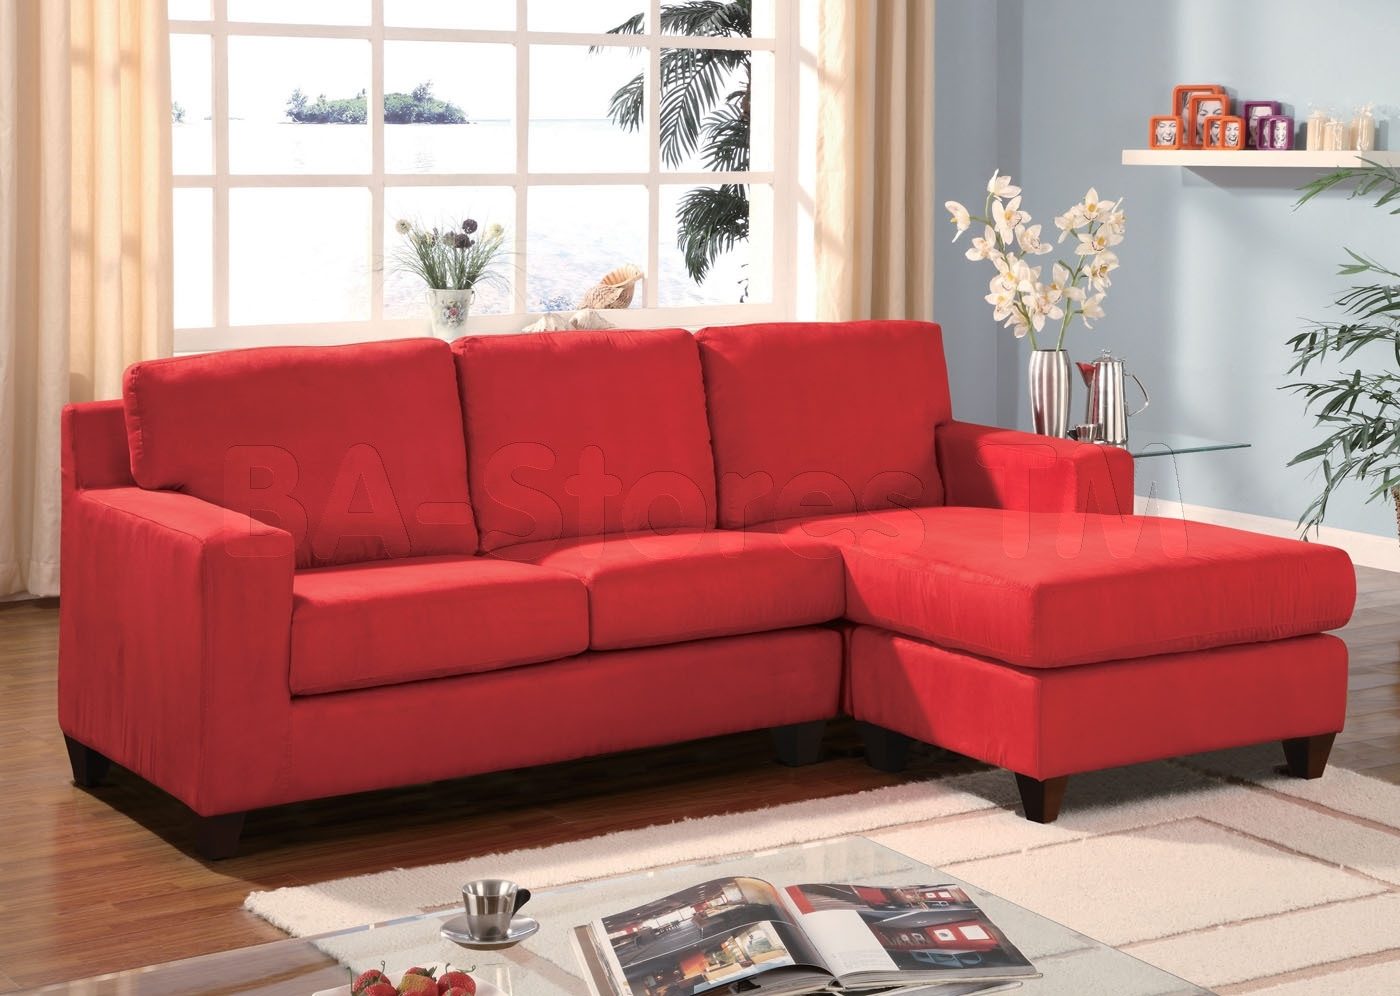 Red Sectional Sofa For Newly Wed Couples Home – Furnitureanddecors Pertaining To Red Sectional Sofas (View 5 of 10)